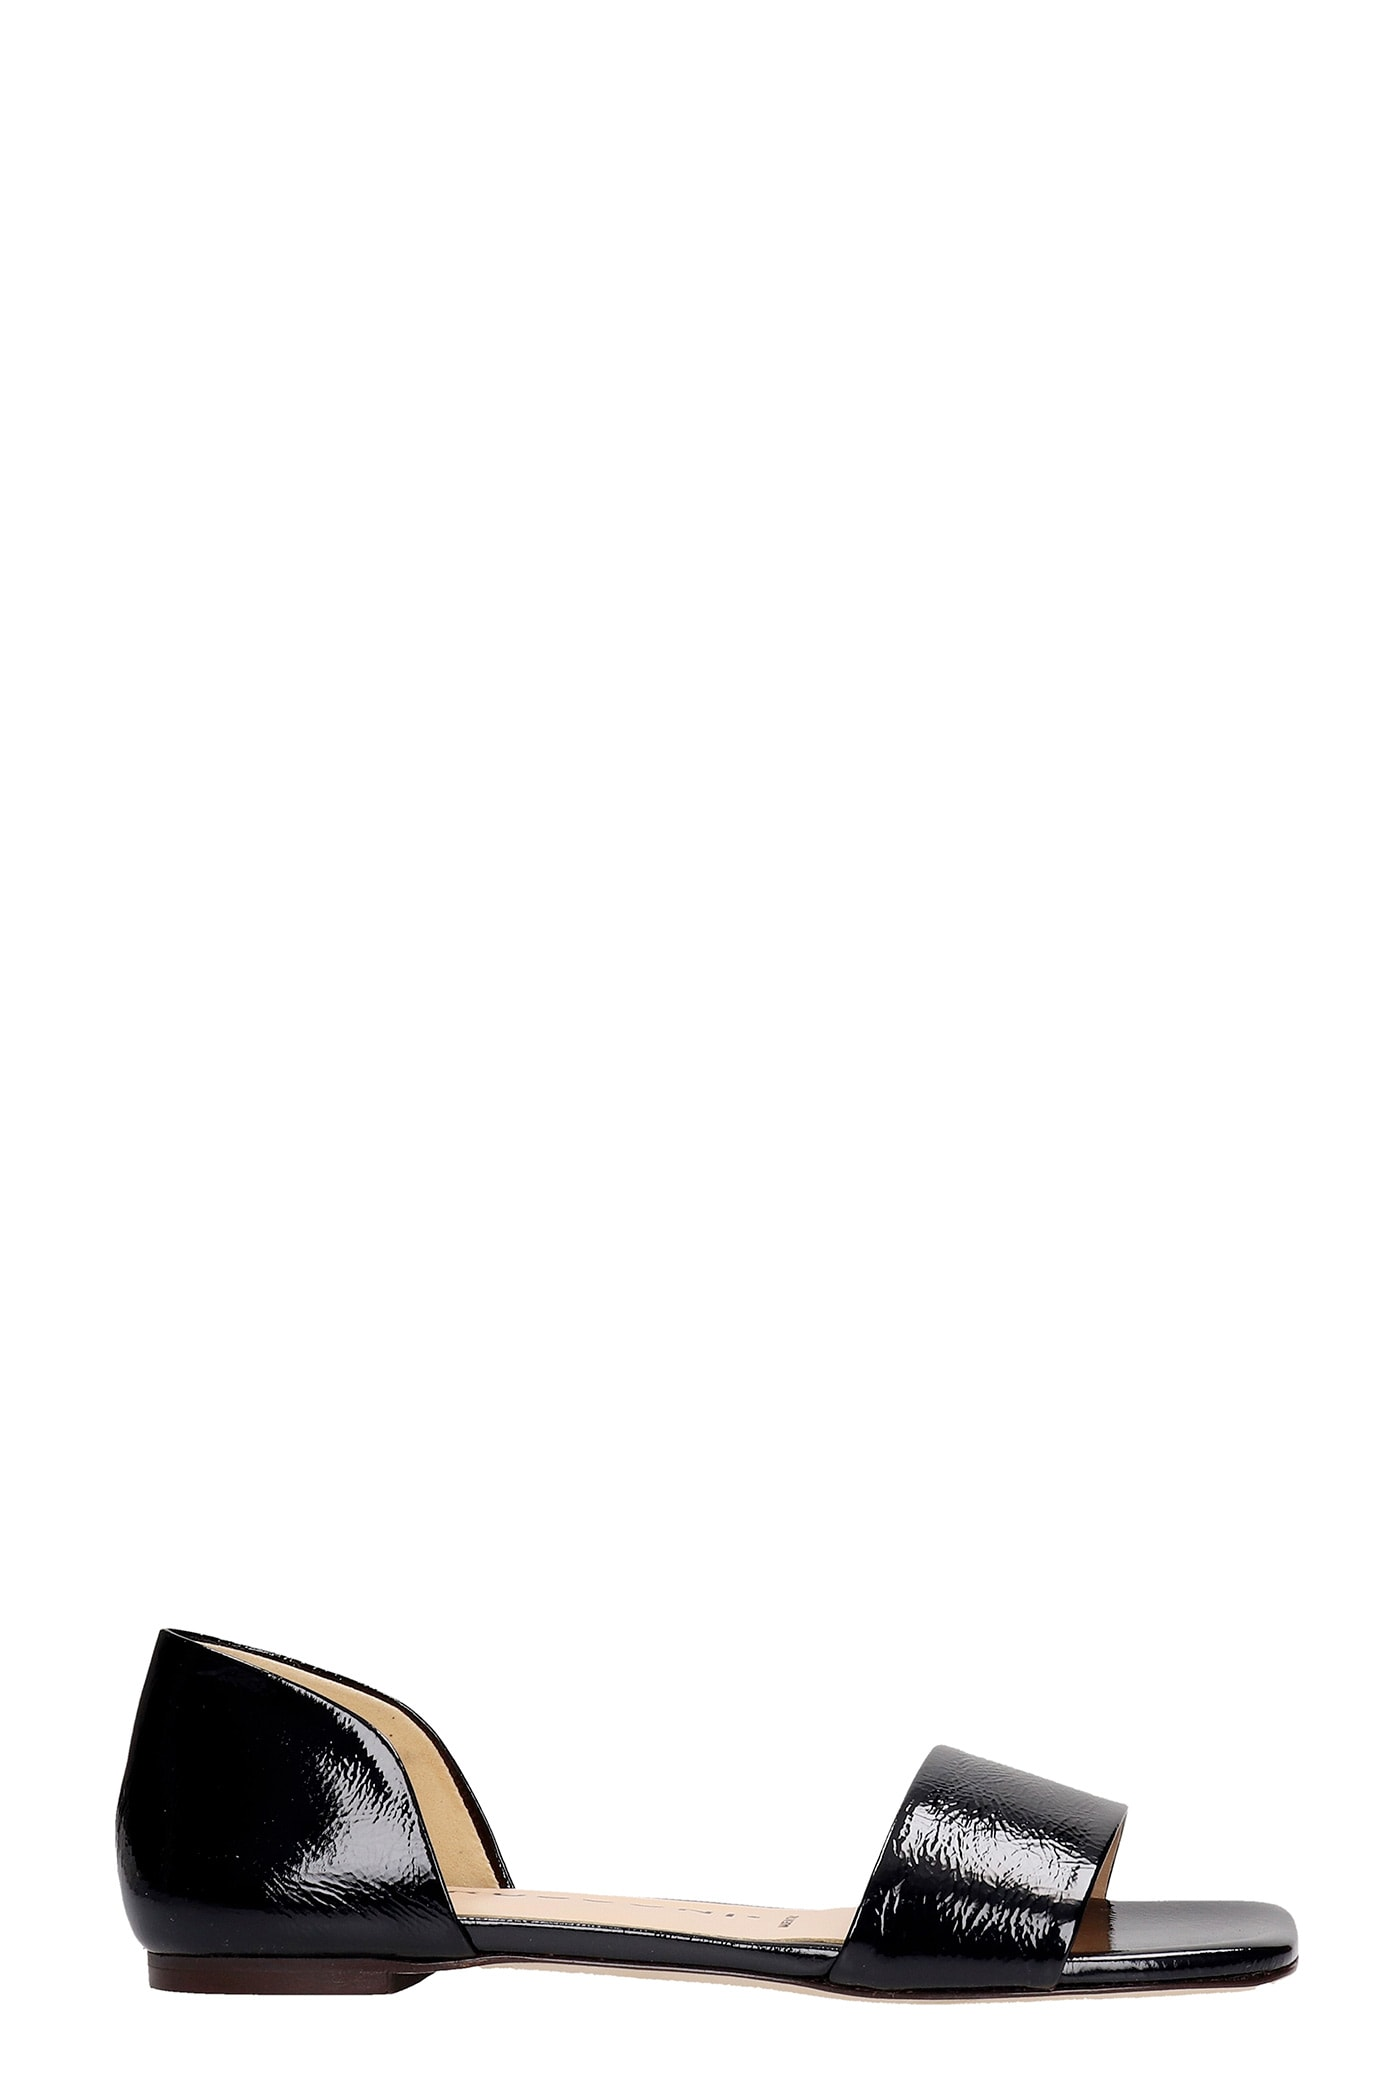 Flats In Black Patent Leather